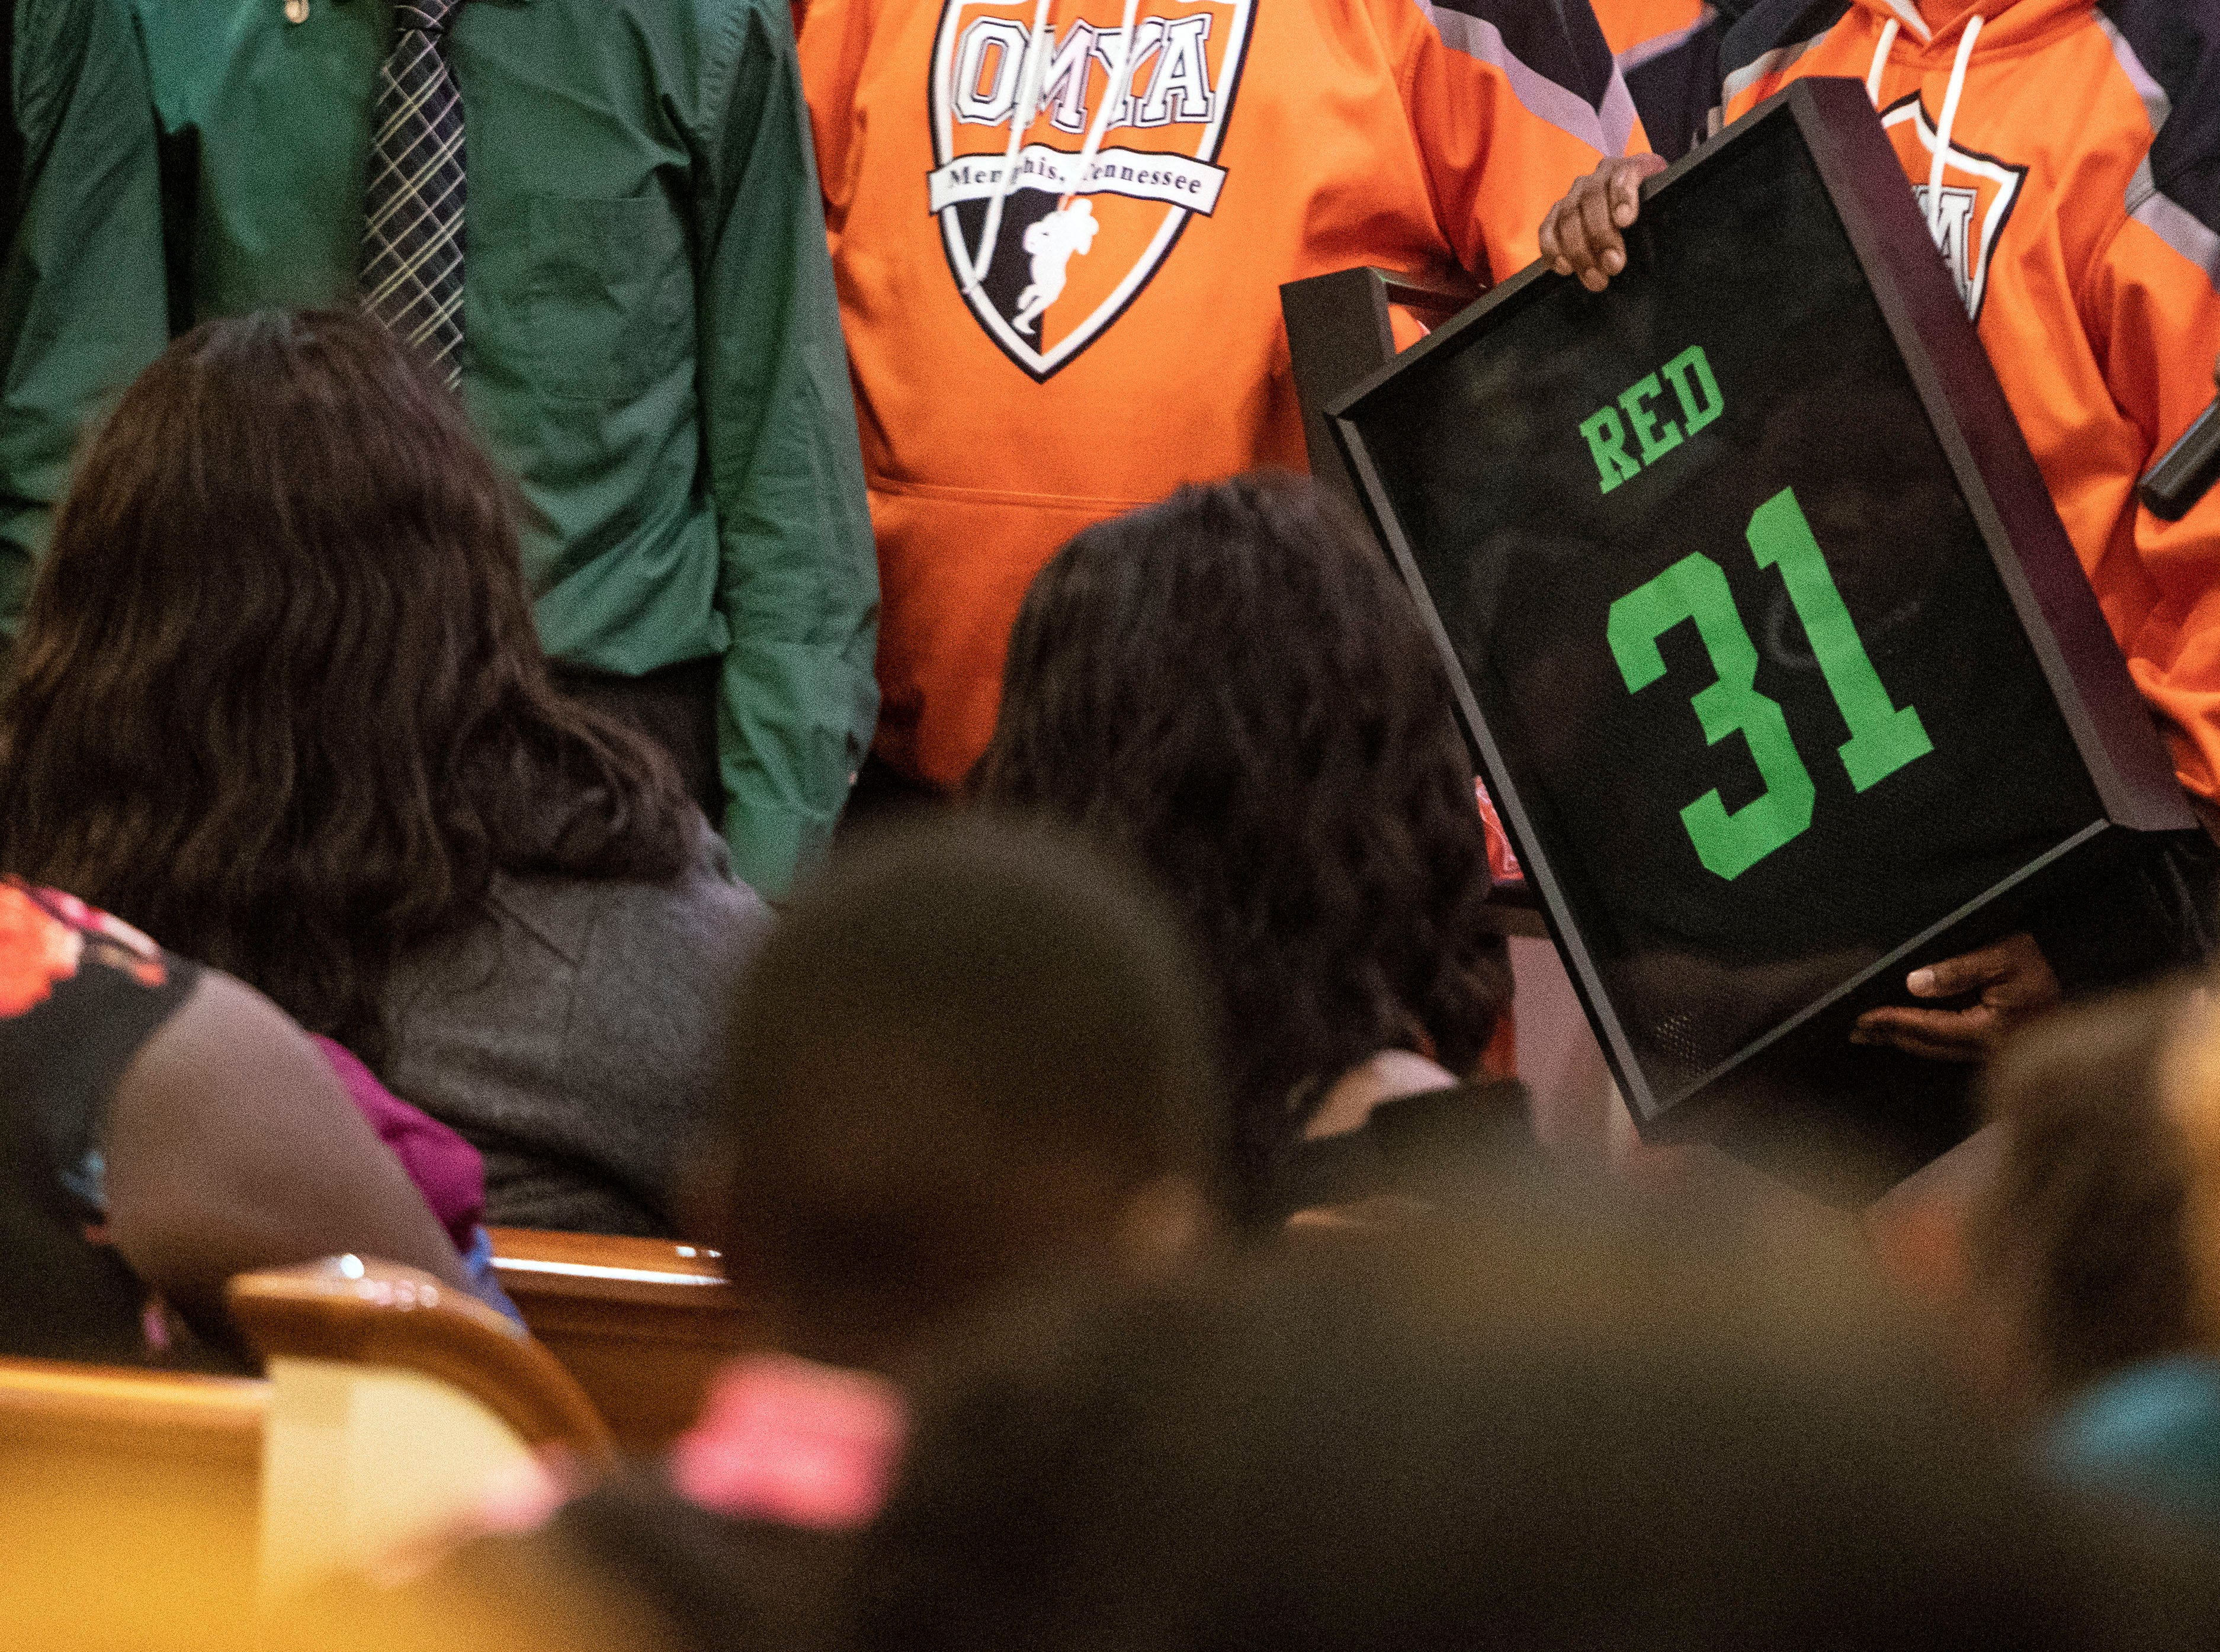 Kameren Johnson's parents are presented with a green and black jersey with Kameren's name and number, from the Orange Mound Youth Association, during the funeral, Saturday, Dec. 15, 2018.